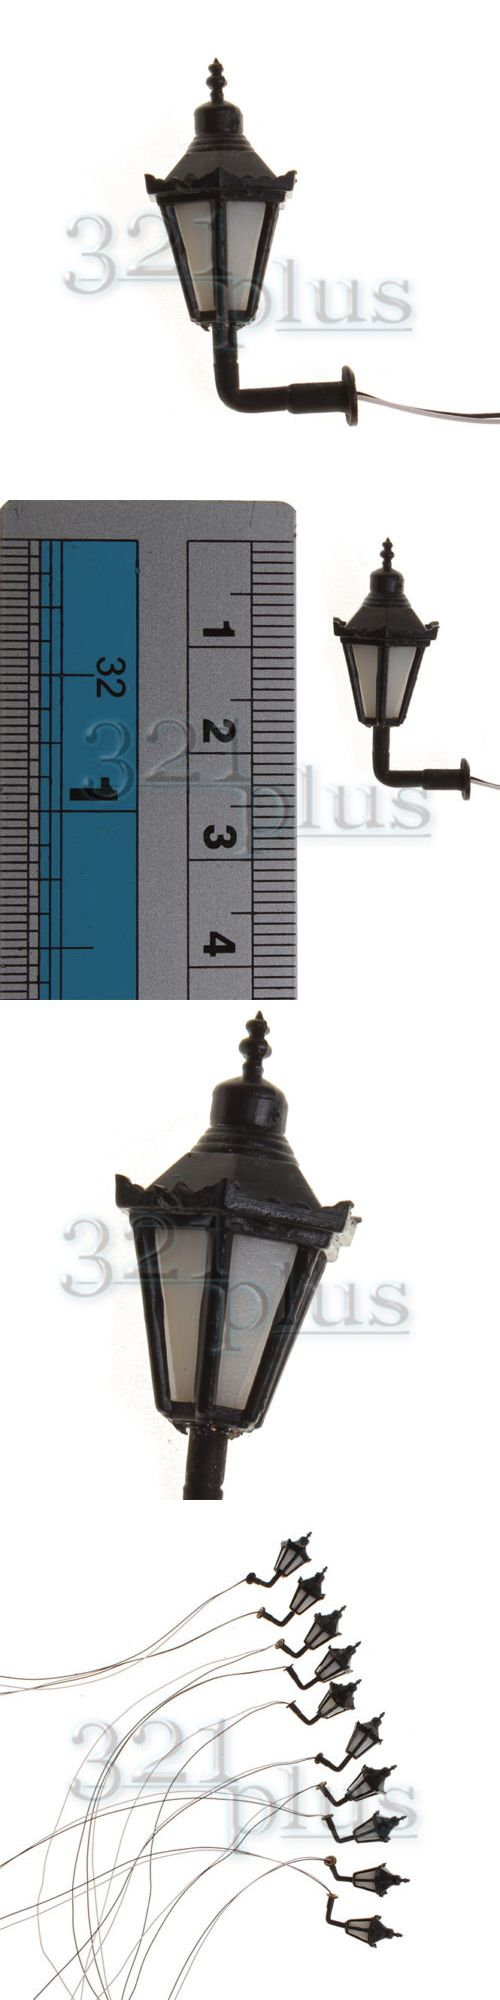 lamps and lights 81026 10 pcs miniature wall lights 1 32 scale